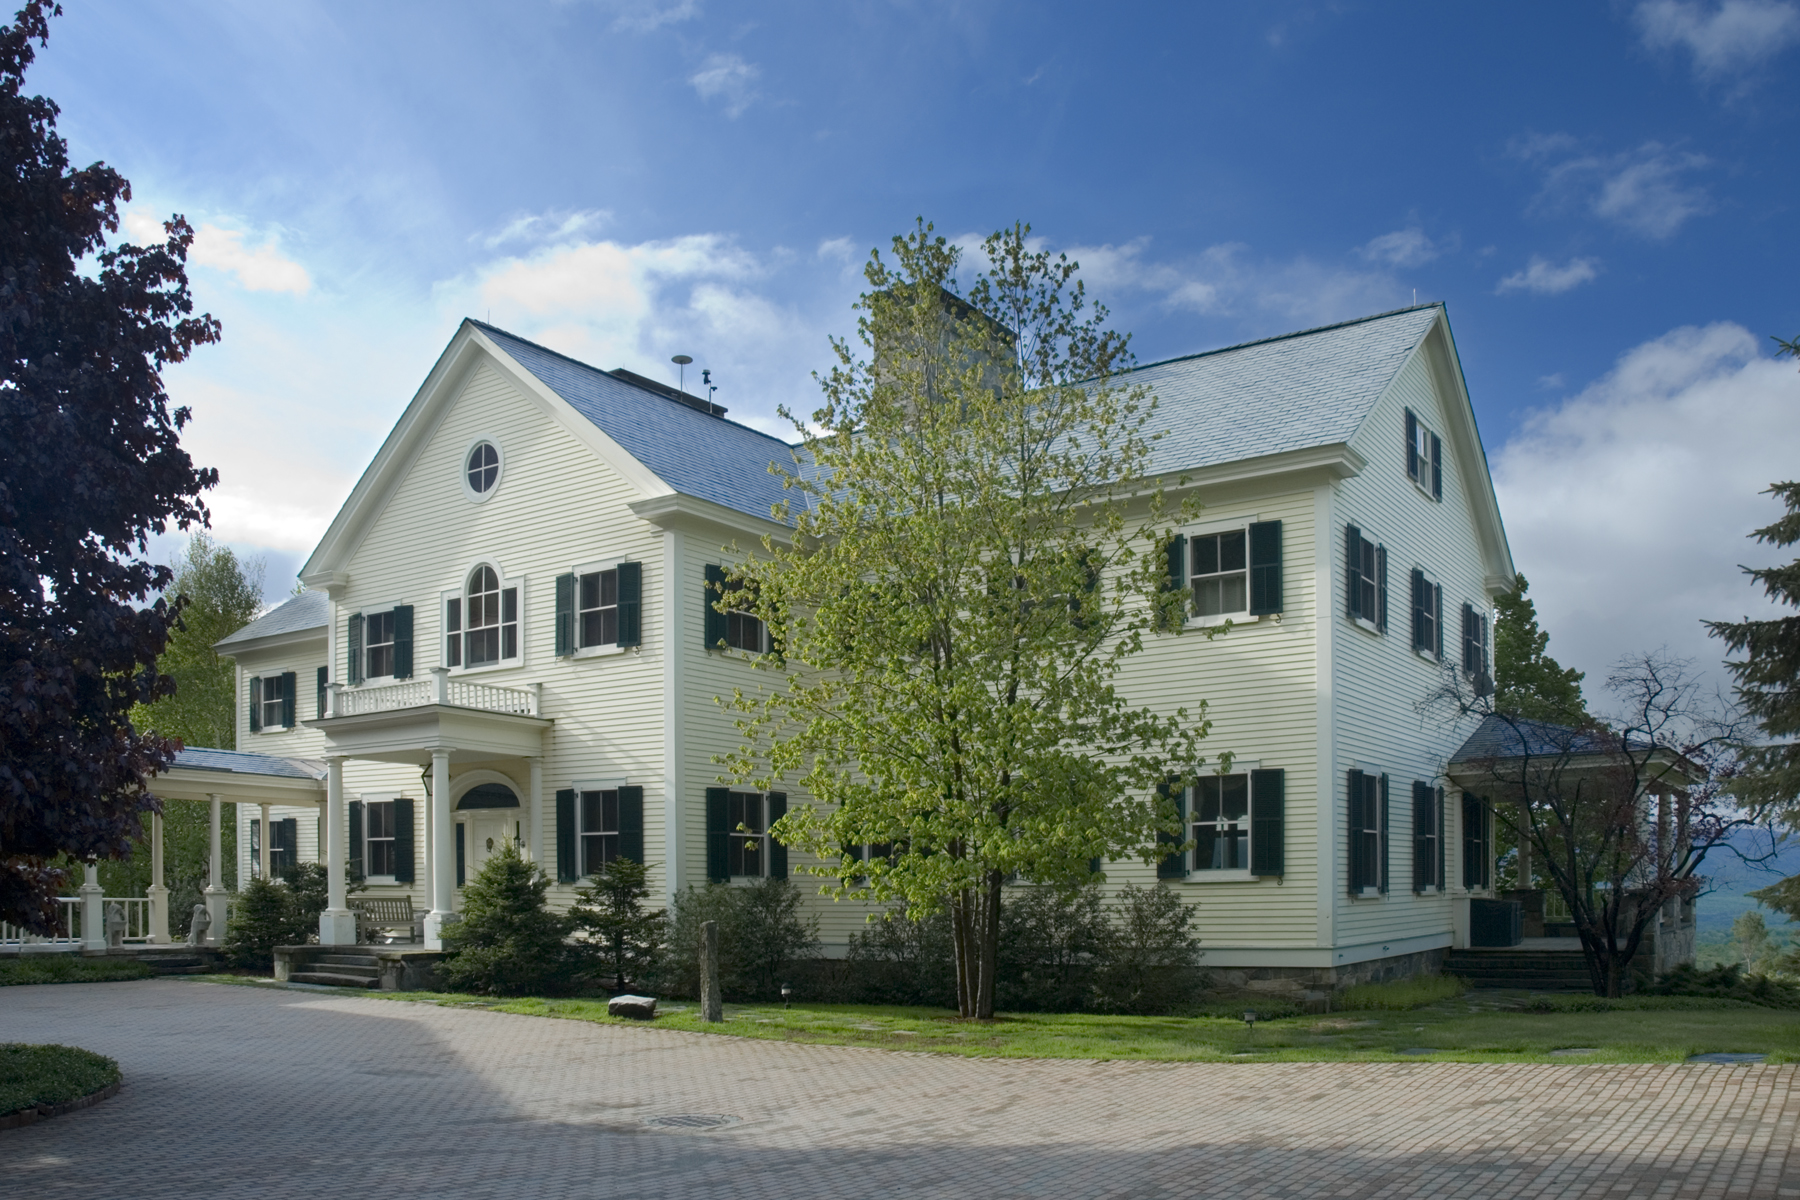 Single Family Homes for Sale at 415 Uphill Lane, Dorset 415 Uphill Ln Dorset, Vermont 05251 United States